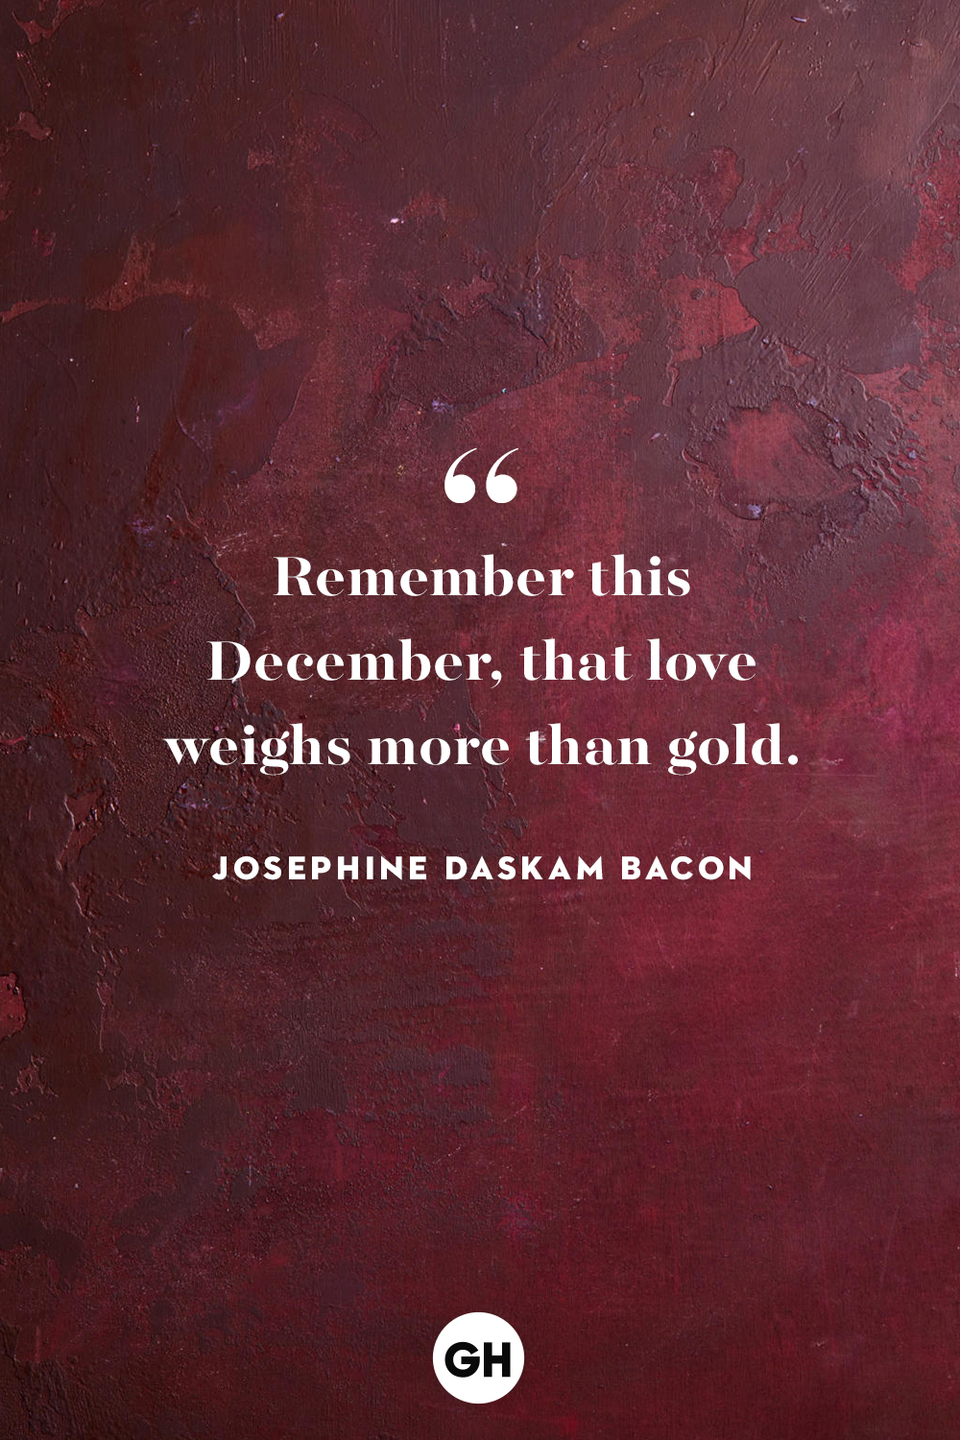 <p>Remember this December, that love weighs more than gold.</p>